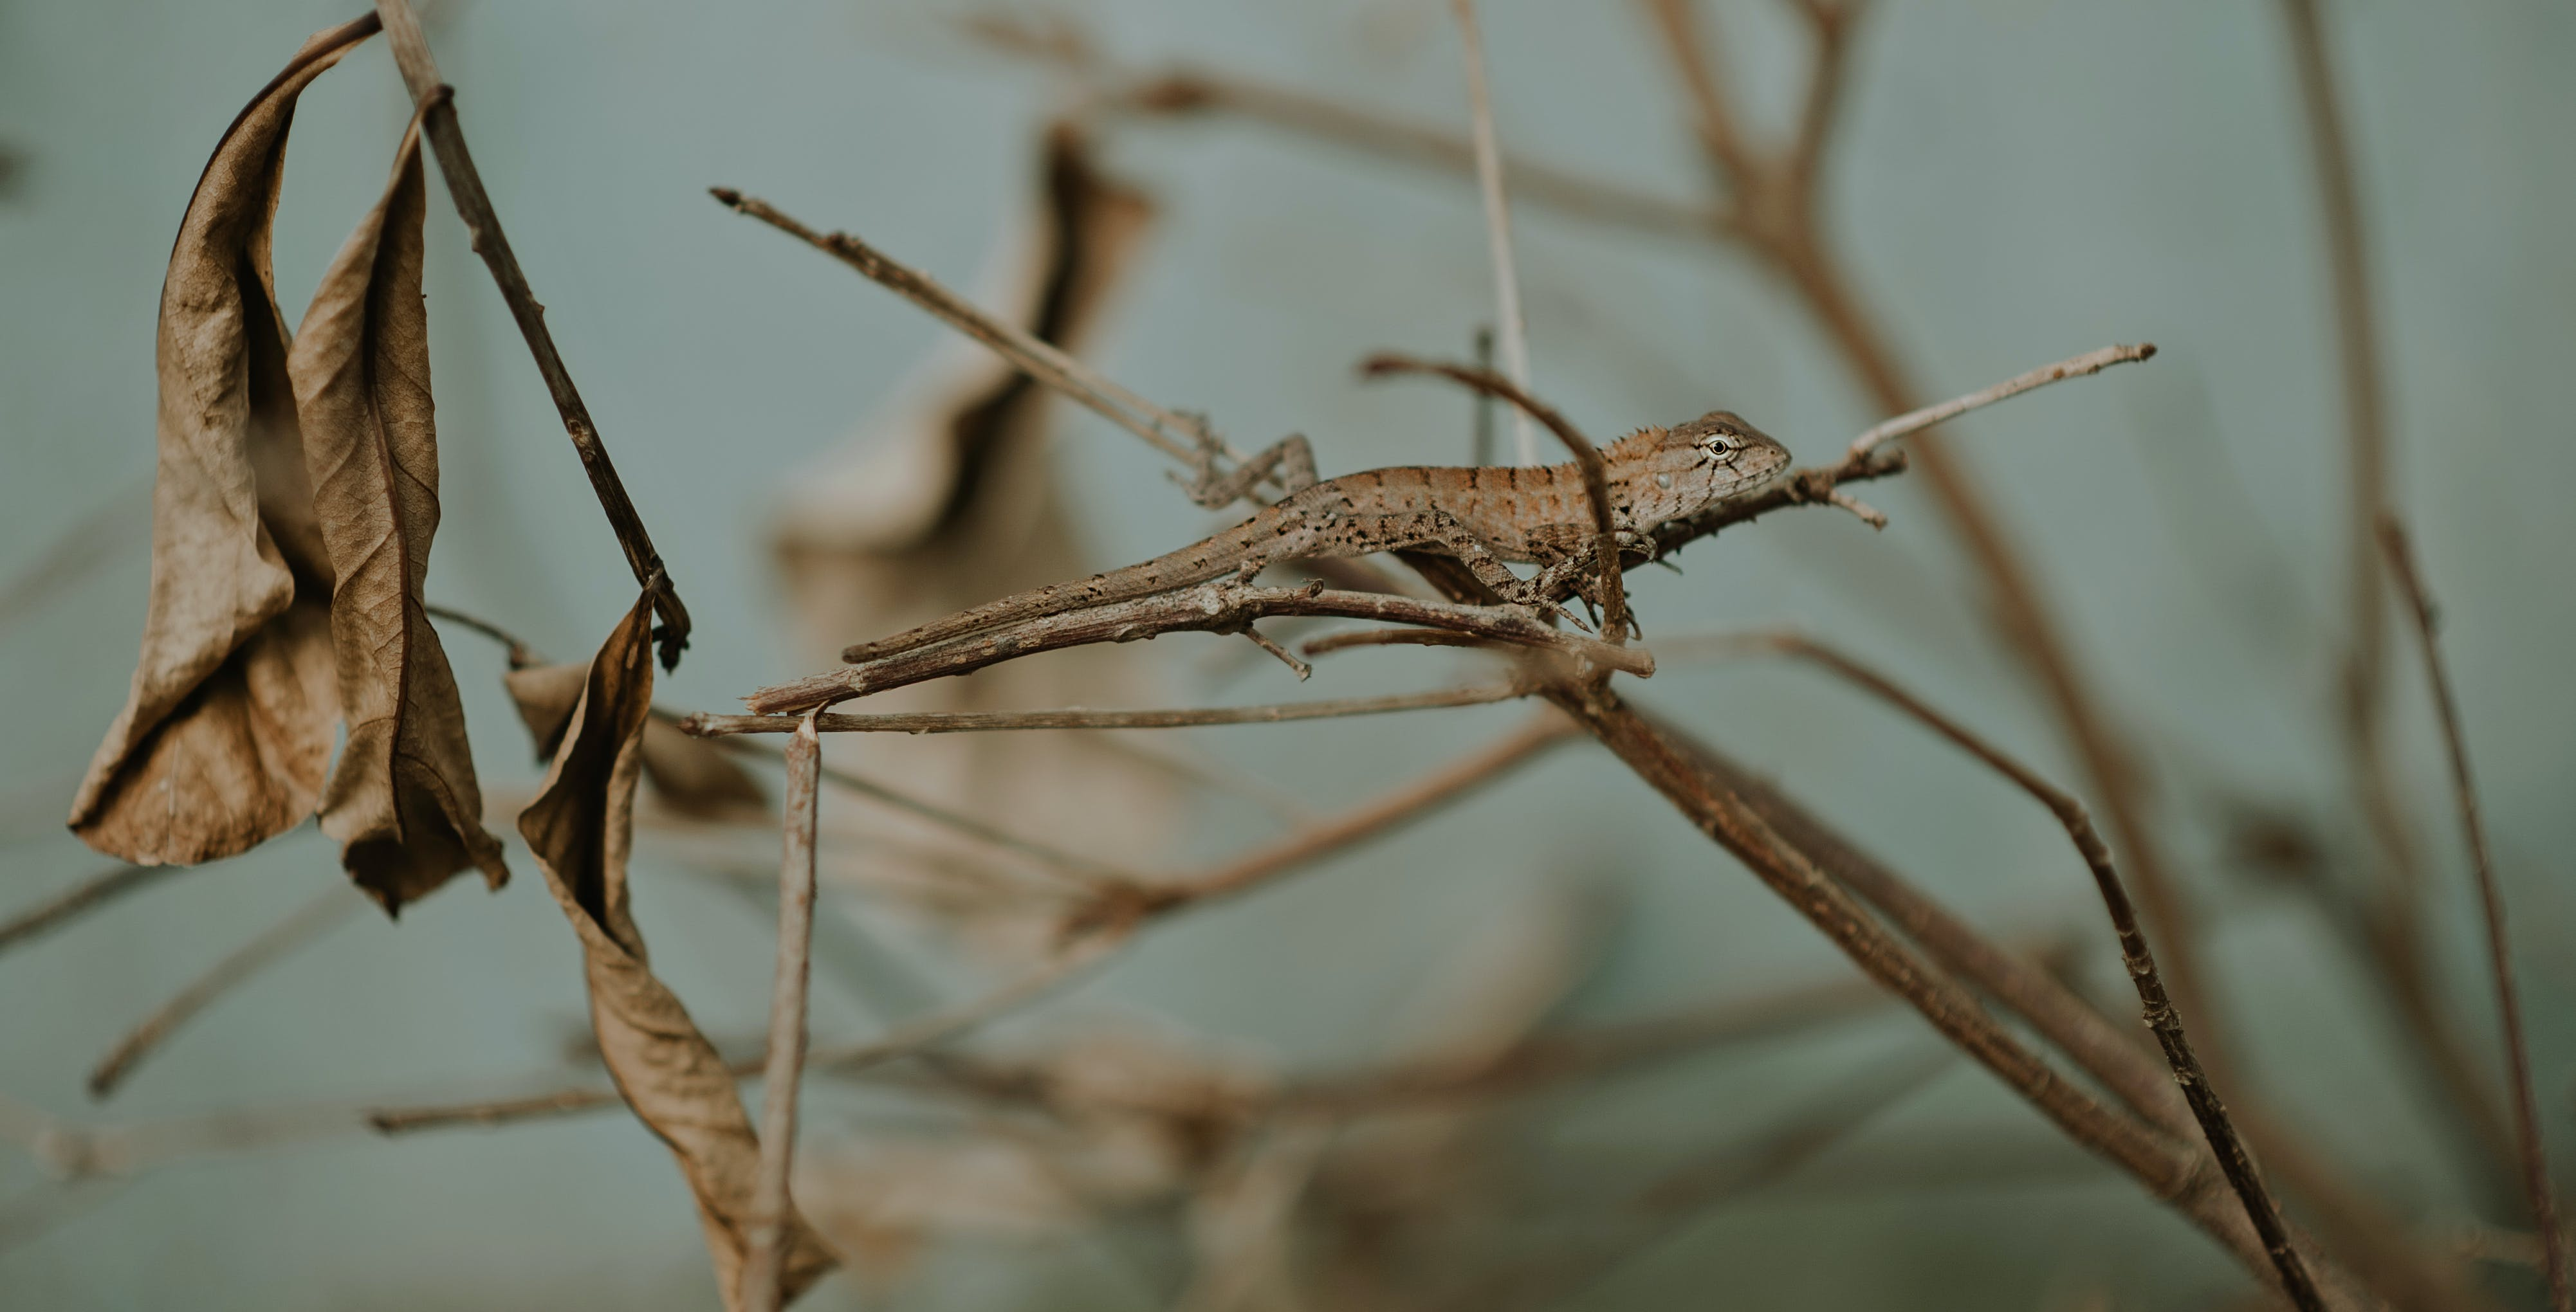 Close-Up Photo of Lizard On Steam